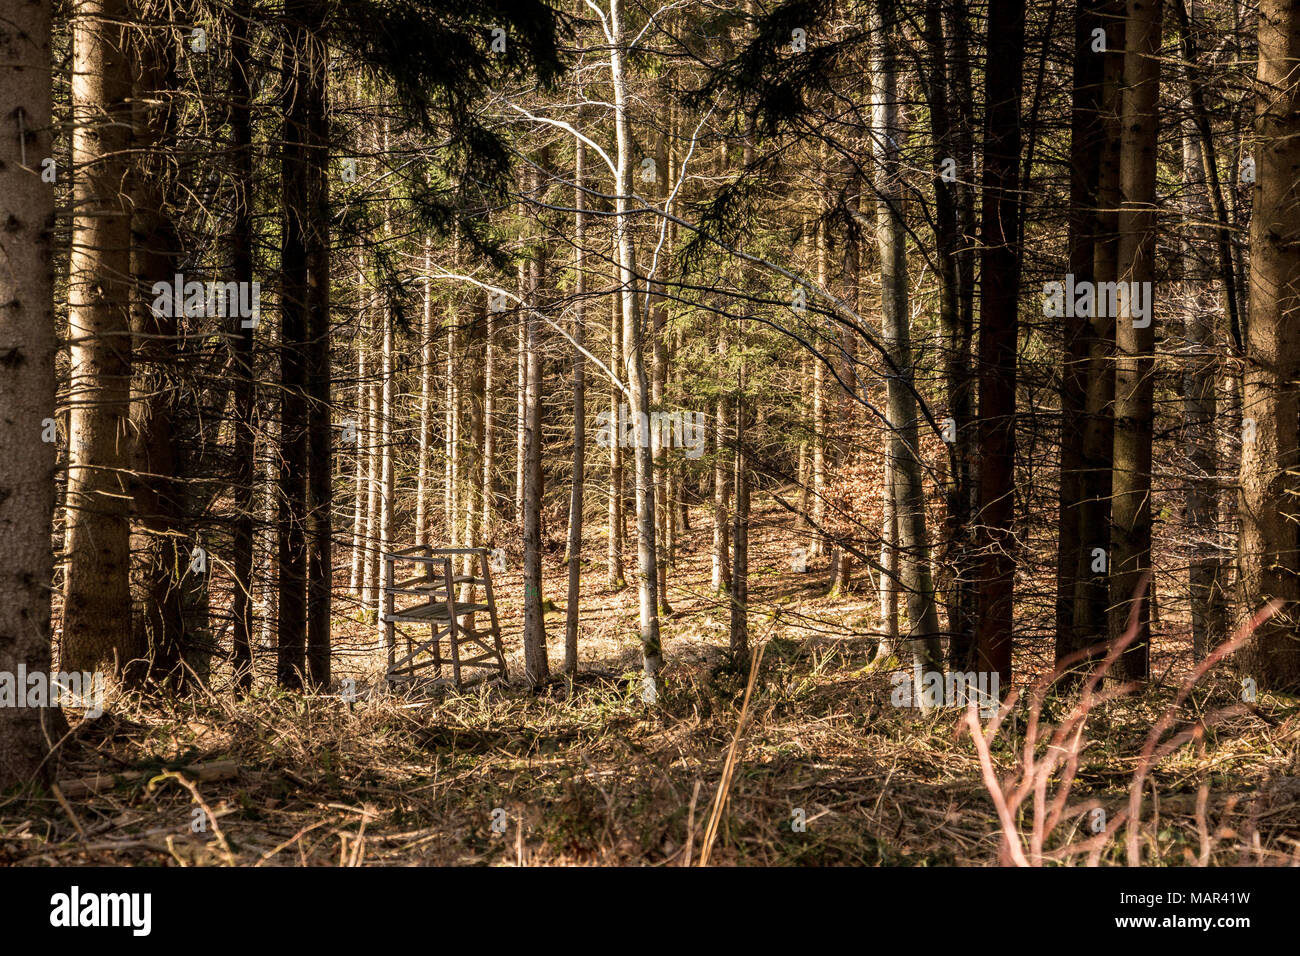 Raised hide in the middle of the forest - Stock Image